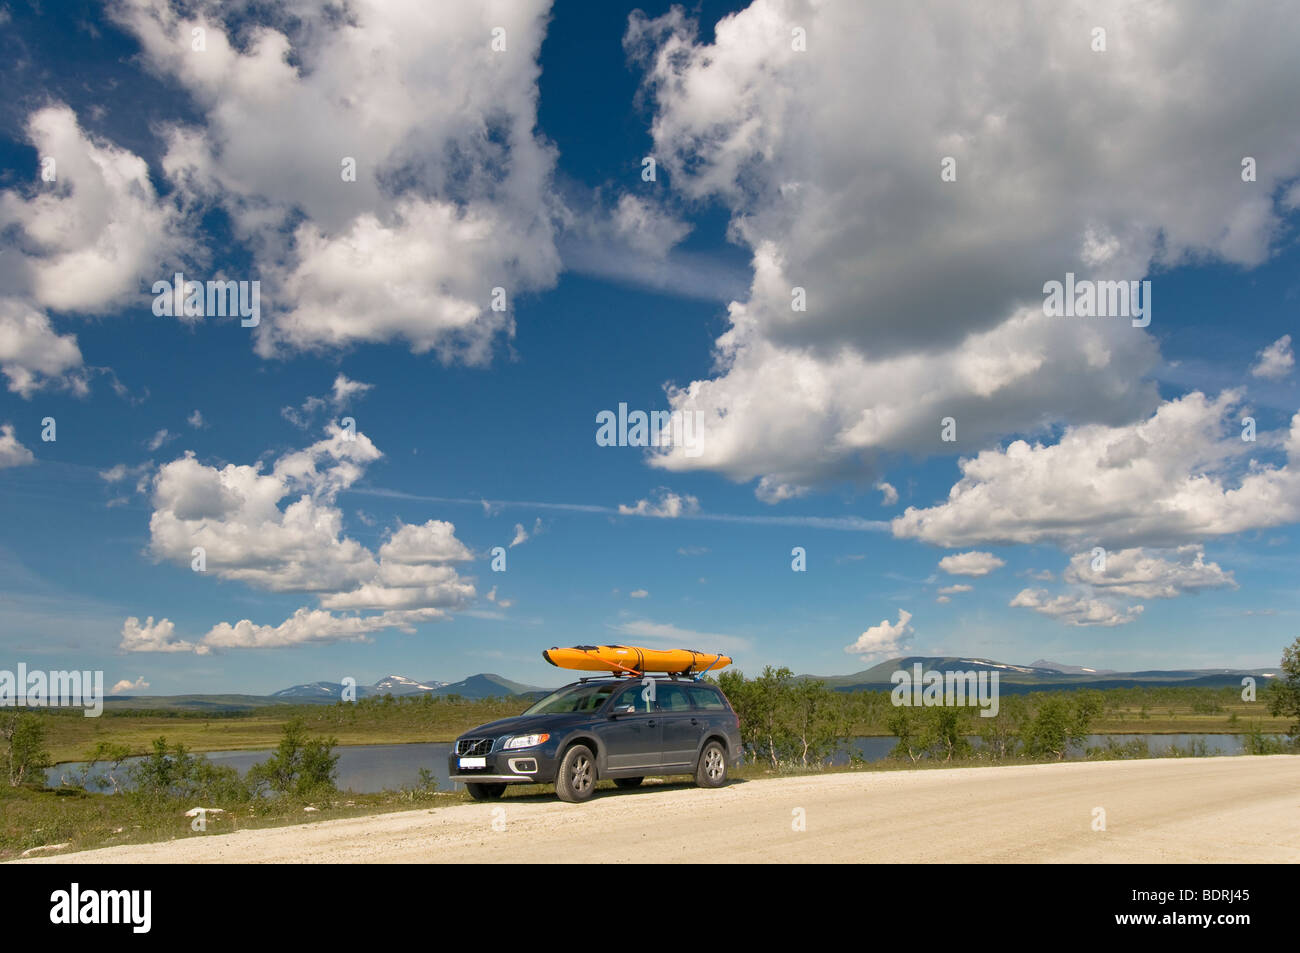 car with kayak in sweden - Stock Image